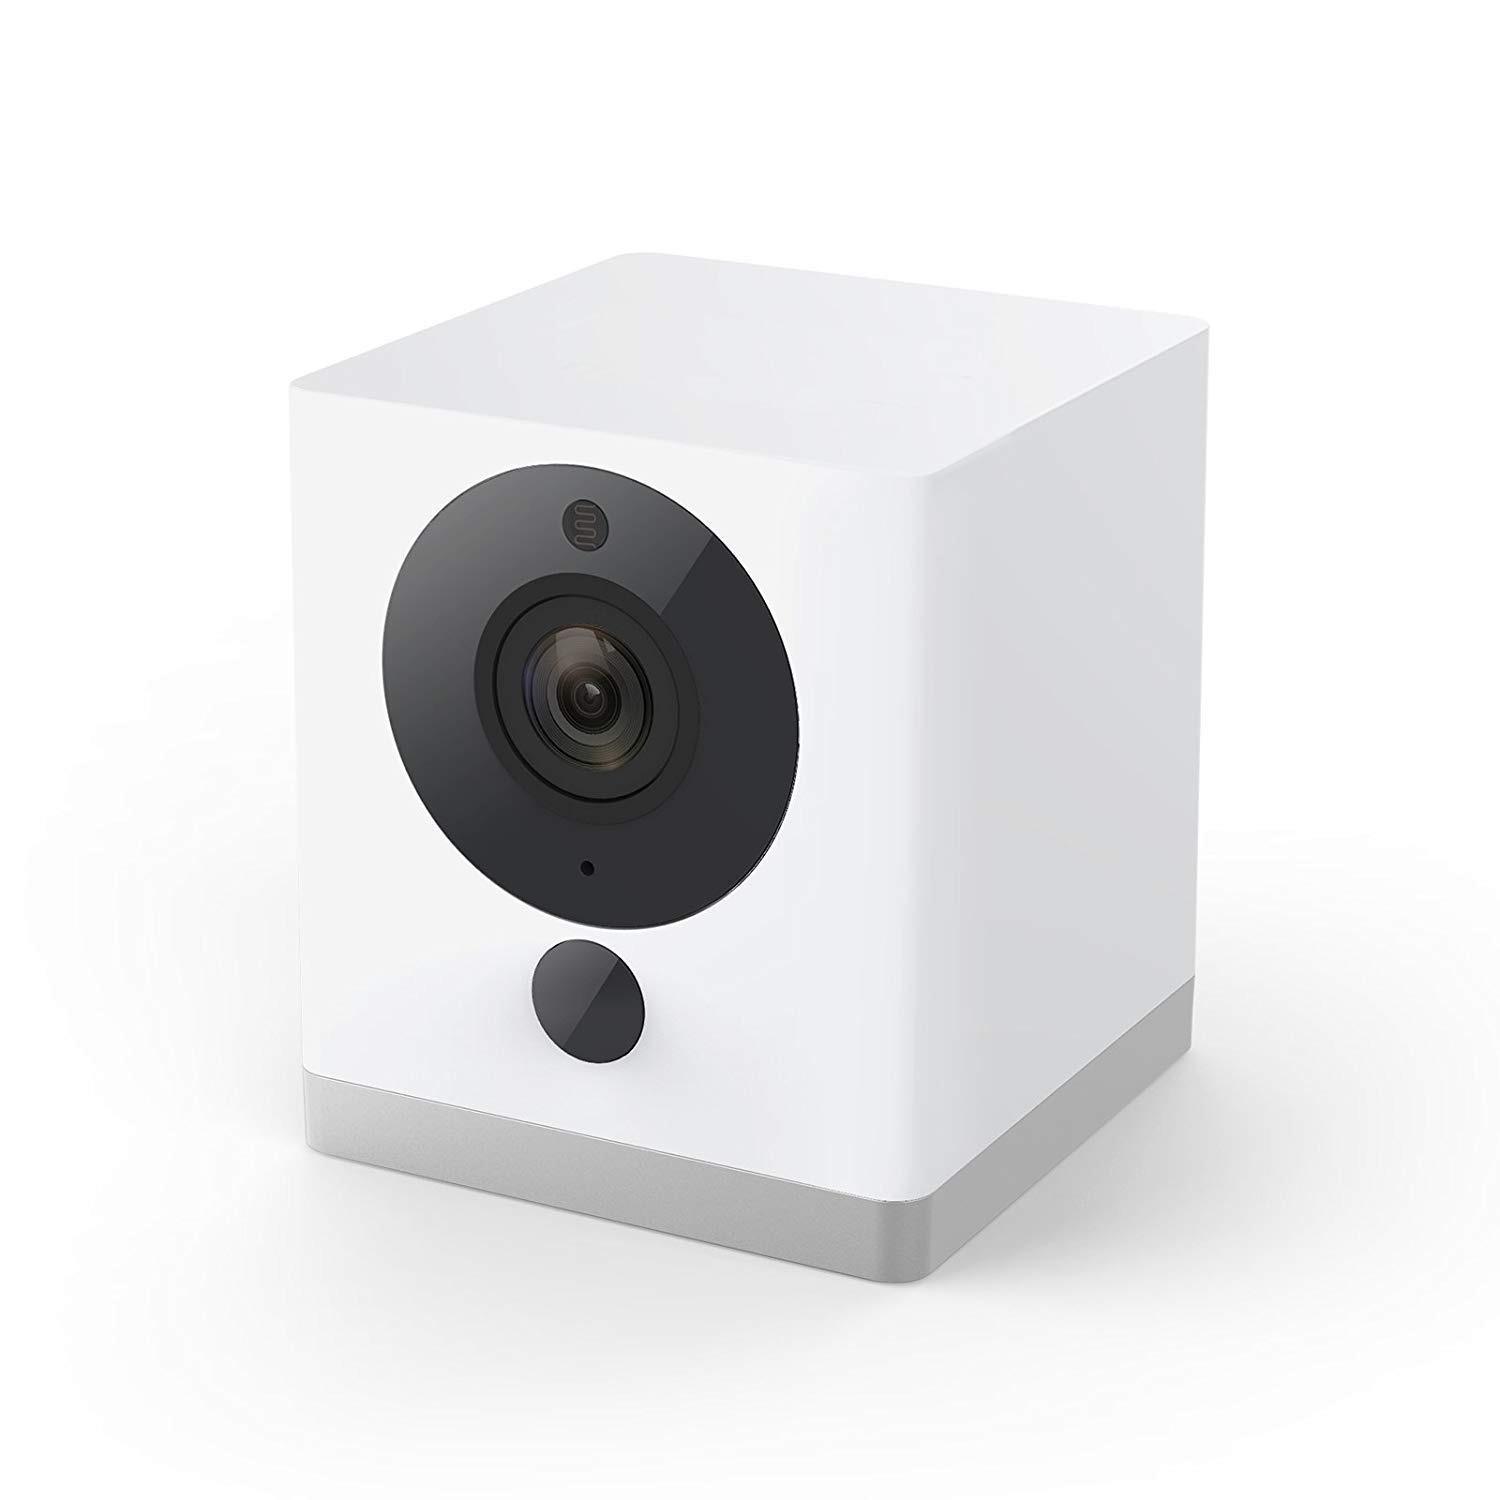 Wyze Cam boxed